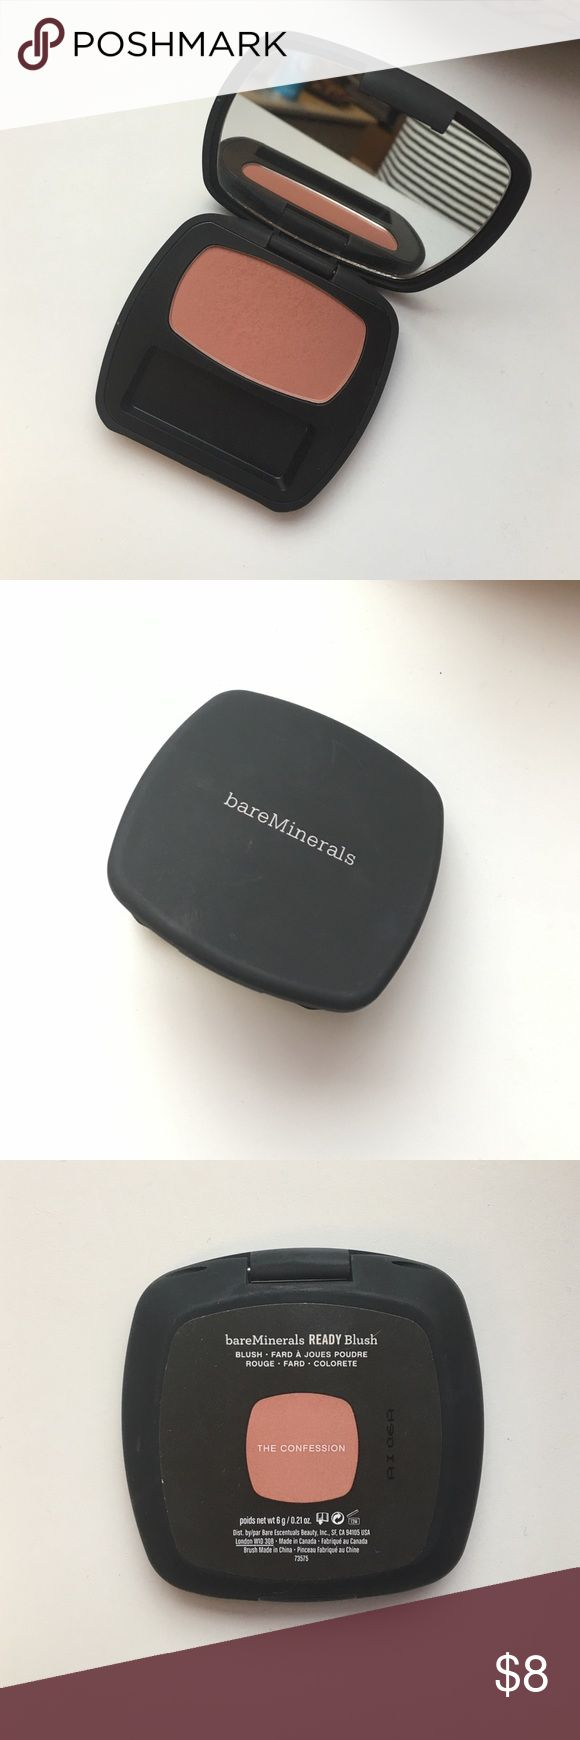 """BareMinerals Blush in """"The Confession"""" Super subtle matte pinky/nude blush I've only used a couple of times. I lost the little brush that comes inside the compact. bareMinerals Makeup Blush"""